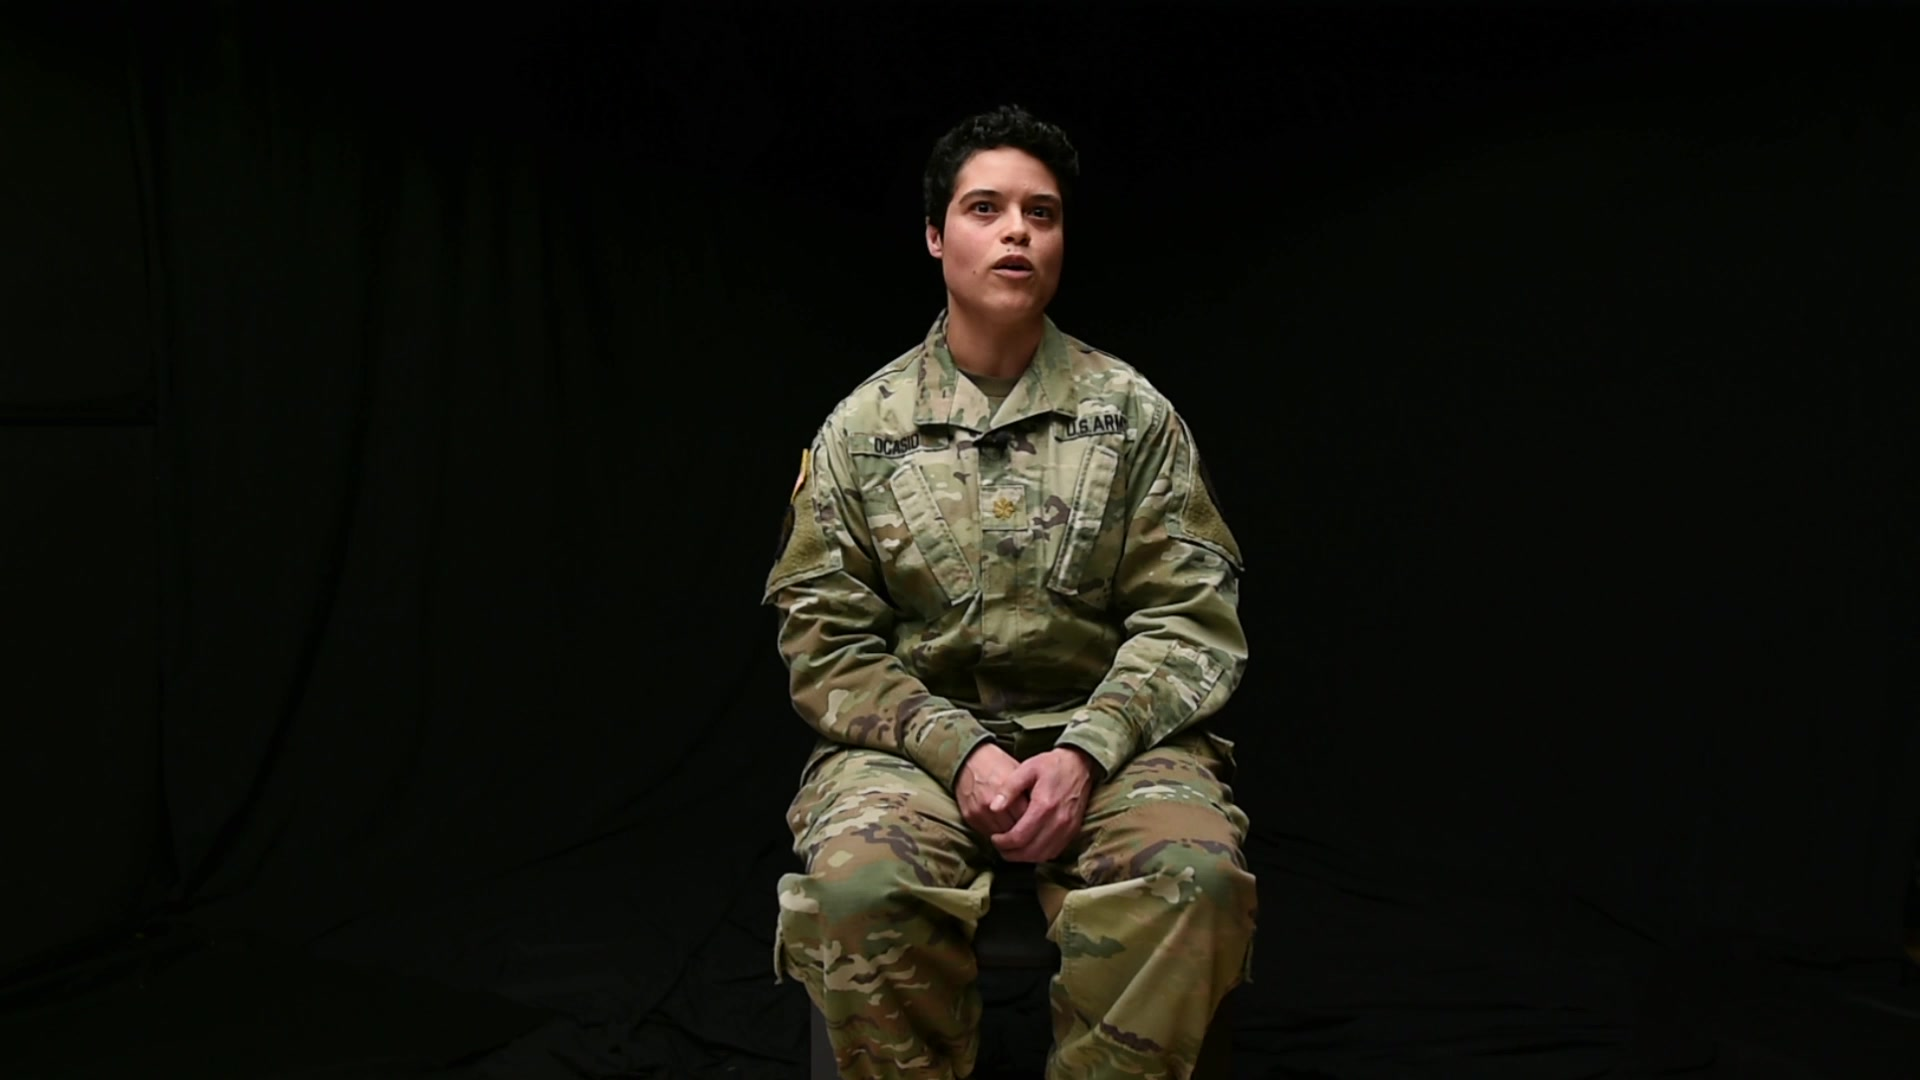 "Maj. Saphira Ocasio, with the 200th Military Police Command, shares her personal story about how a struggle with her sexual identity brought her face-to-face with thoughts of suicide. This story is part of a series of videos for ""Voices of Strength,"" a campaign produced by the 200th MP Command's Suicide Prevention and Public Affairs Staff Offices. The video series offers a revamped look at suicide prevention, using real, unscripted stories of U.S. Army Reserve Soldiers involved with suicide, either through personal thoughts or attempts, the loss of a loved one, loss of a Soldier, or through the perspective of the investigative officers. The goal of these videos is to offer new content for suicide prevention training and discussion during unit training activities to reduce suicide rates across the force. These U.S. Army Reserve videos are produced by David Dummer and directed by Master Sgt. Michel Sauret, and edited by both in a collaborative effort. All interviews were filmed at the Defense Media Activity studios. For more credits, please see video credits at the end of each film."